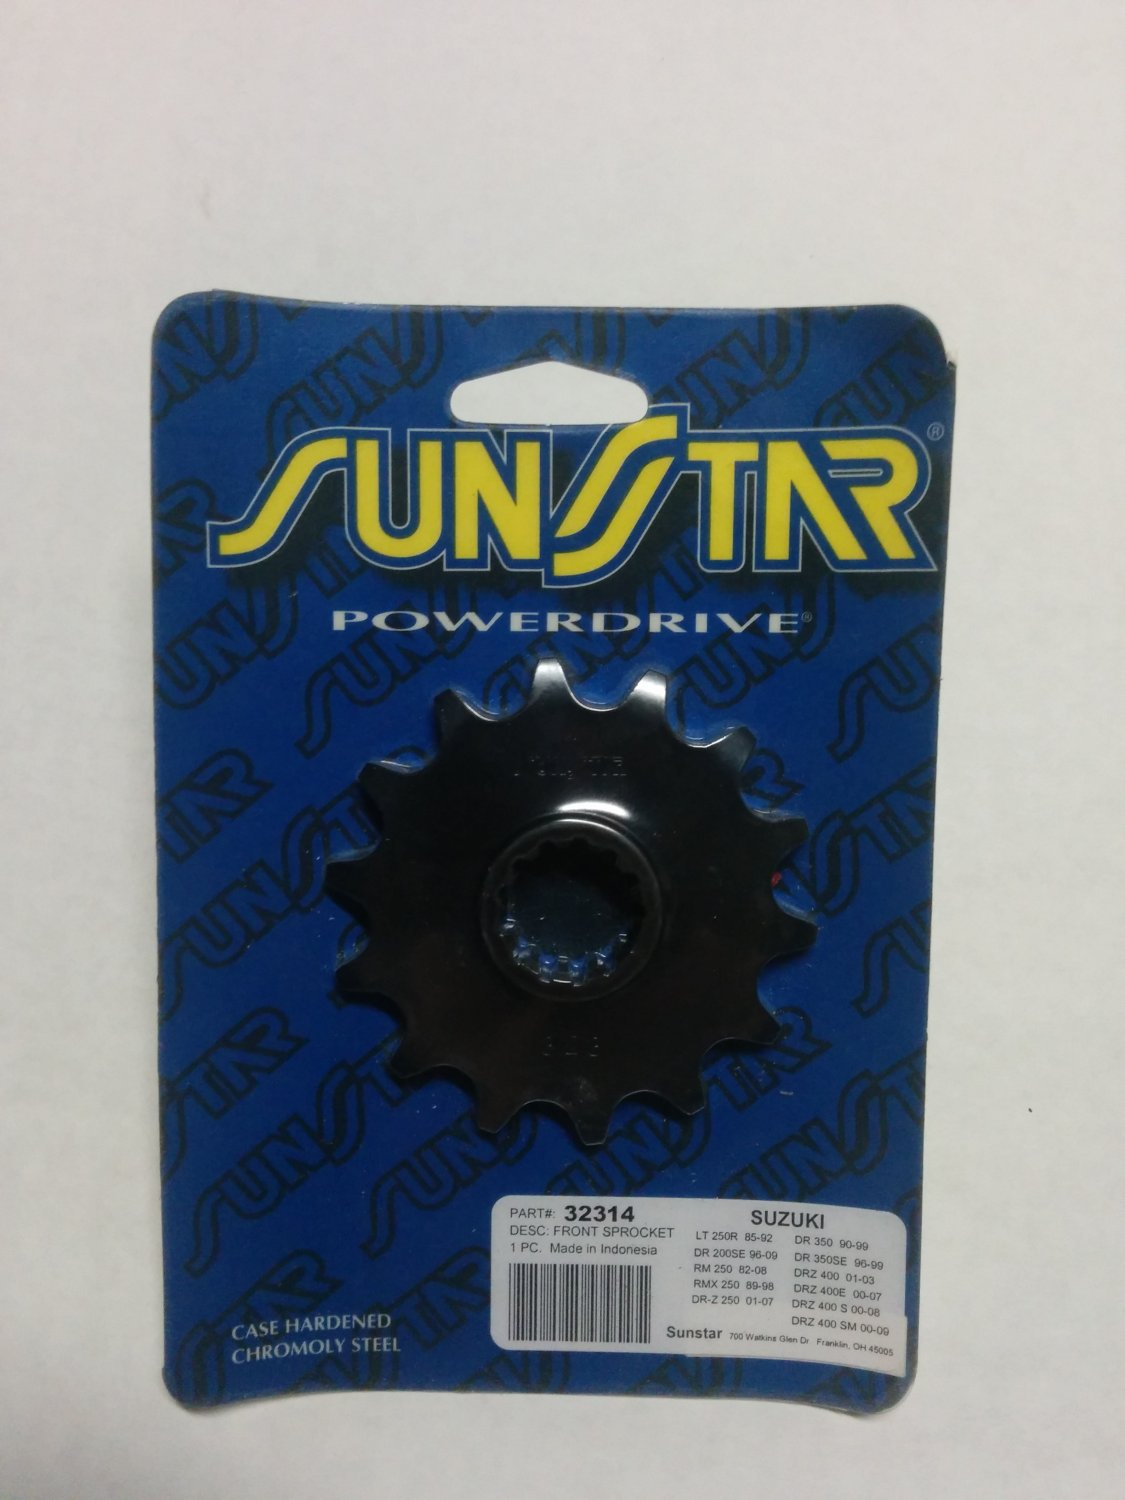 Sunstar Powerdrive Countershaft Sprockets 32314